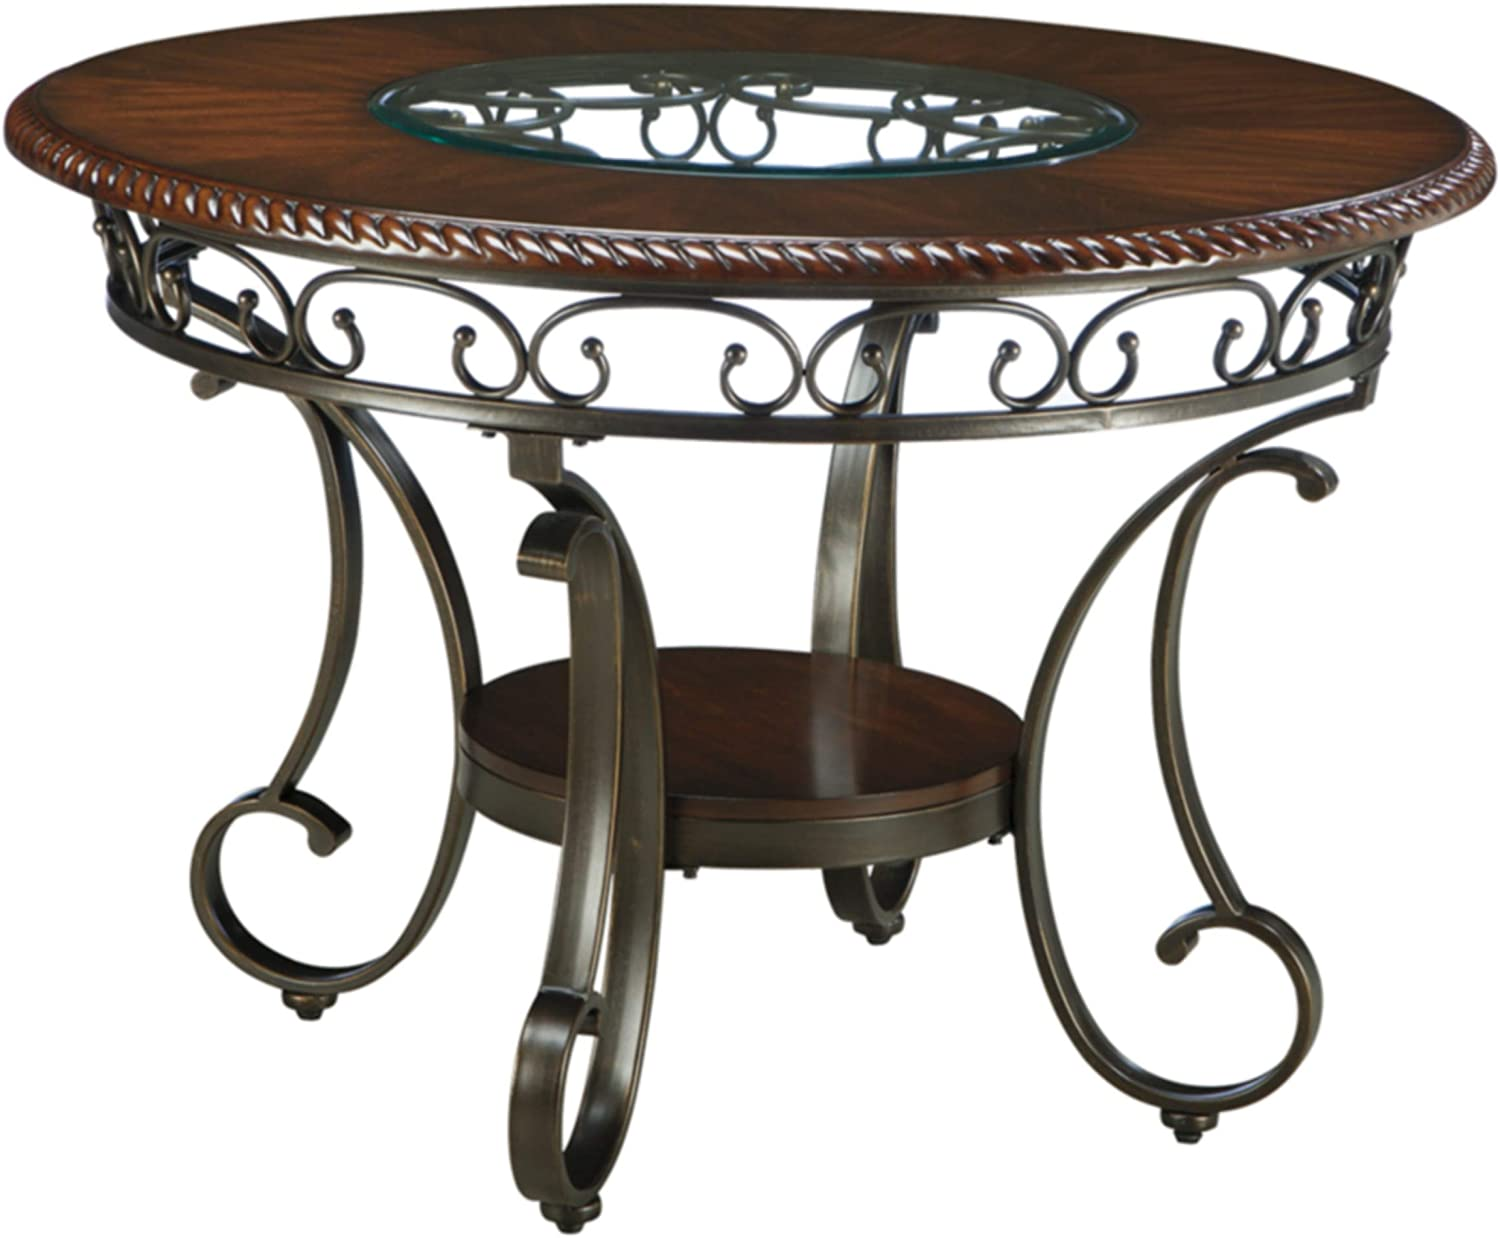 Signature Design by Ashley Glambrey Dining Room Table   Brown